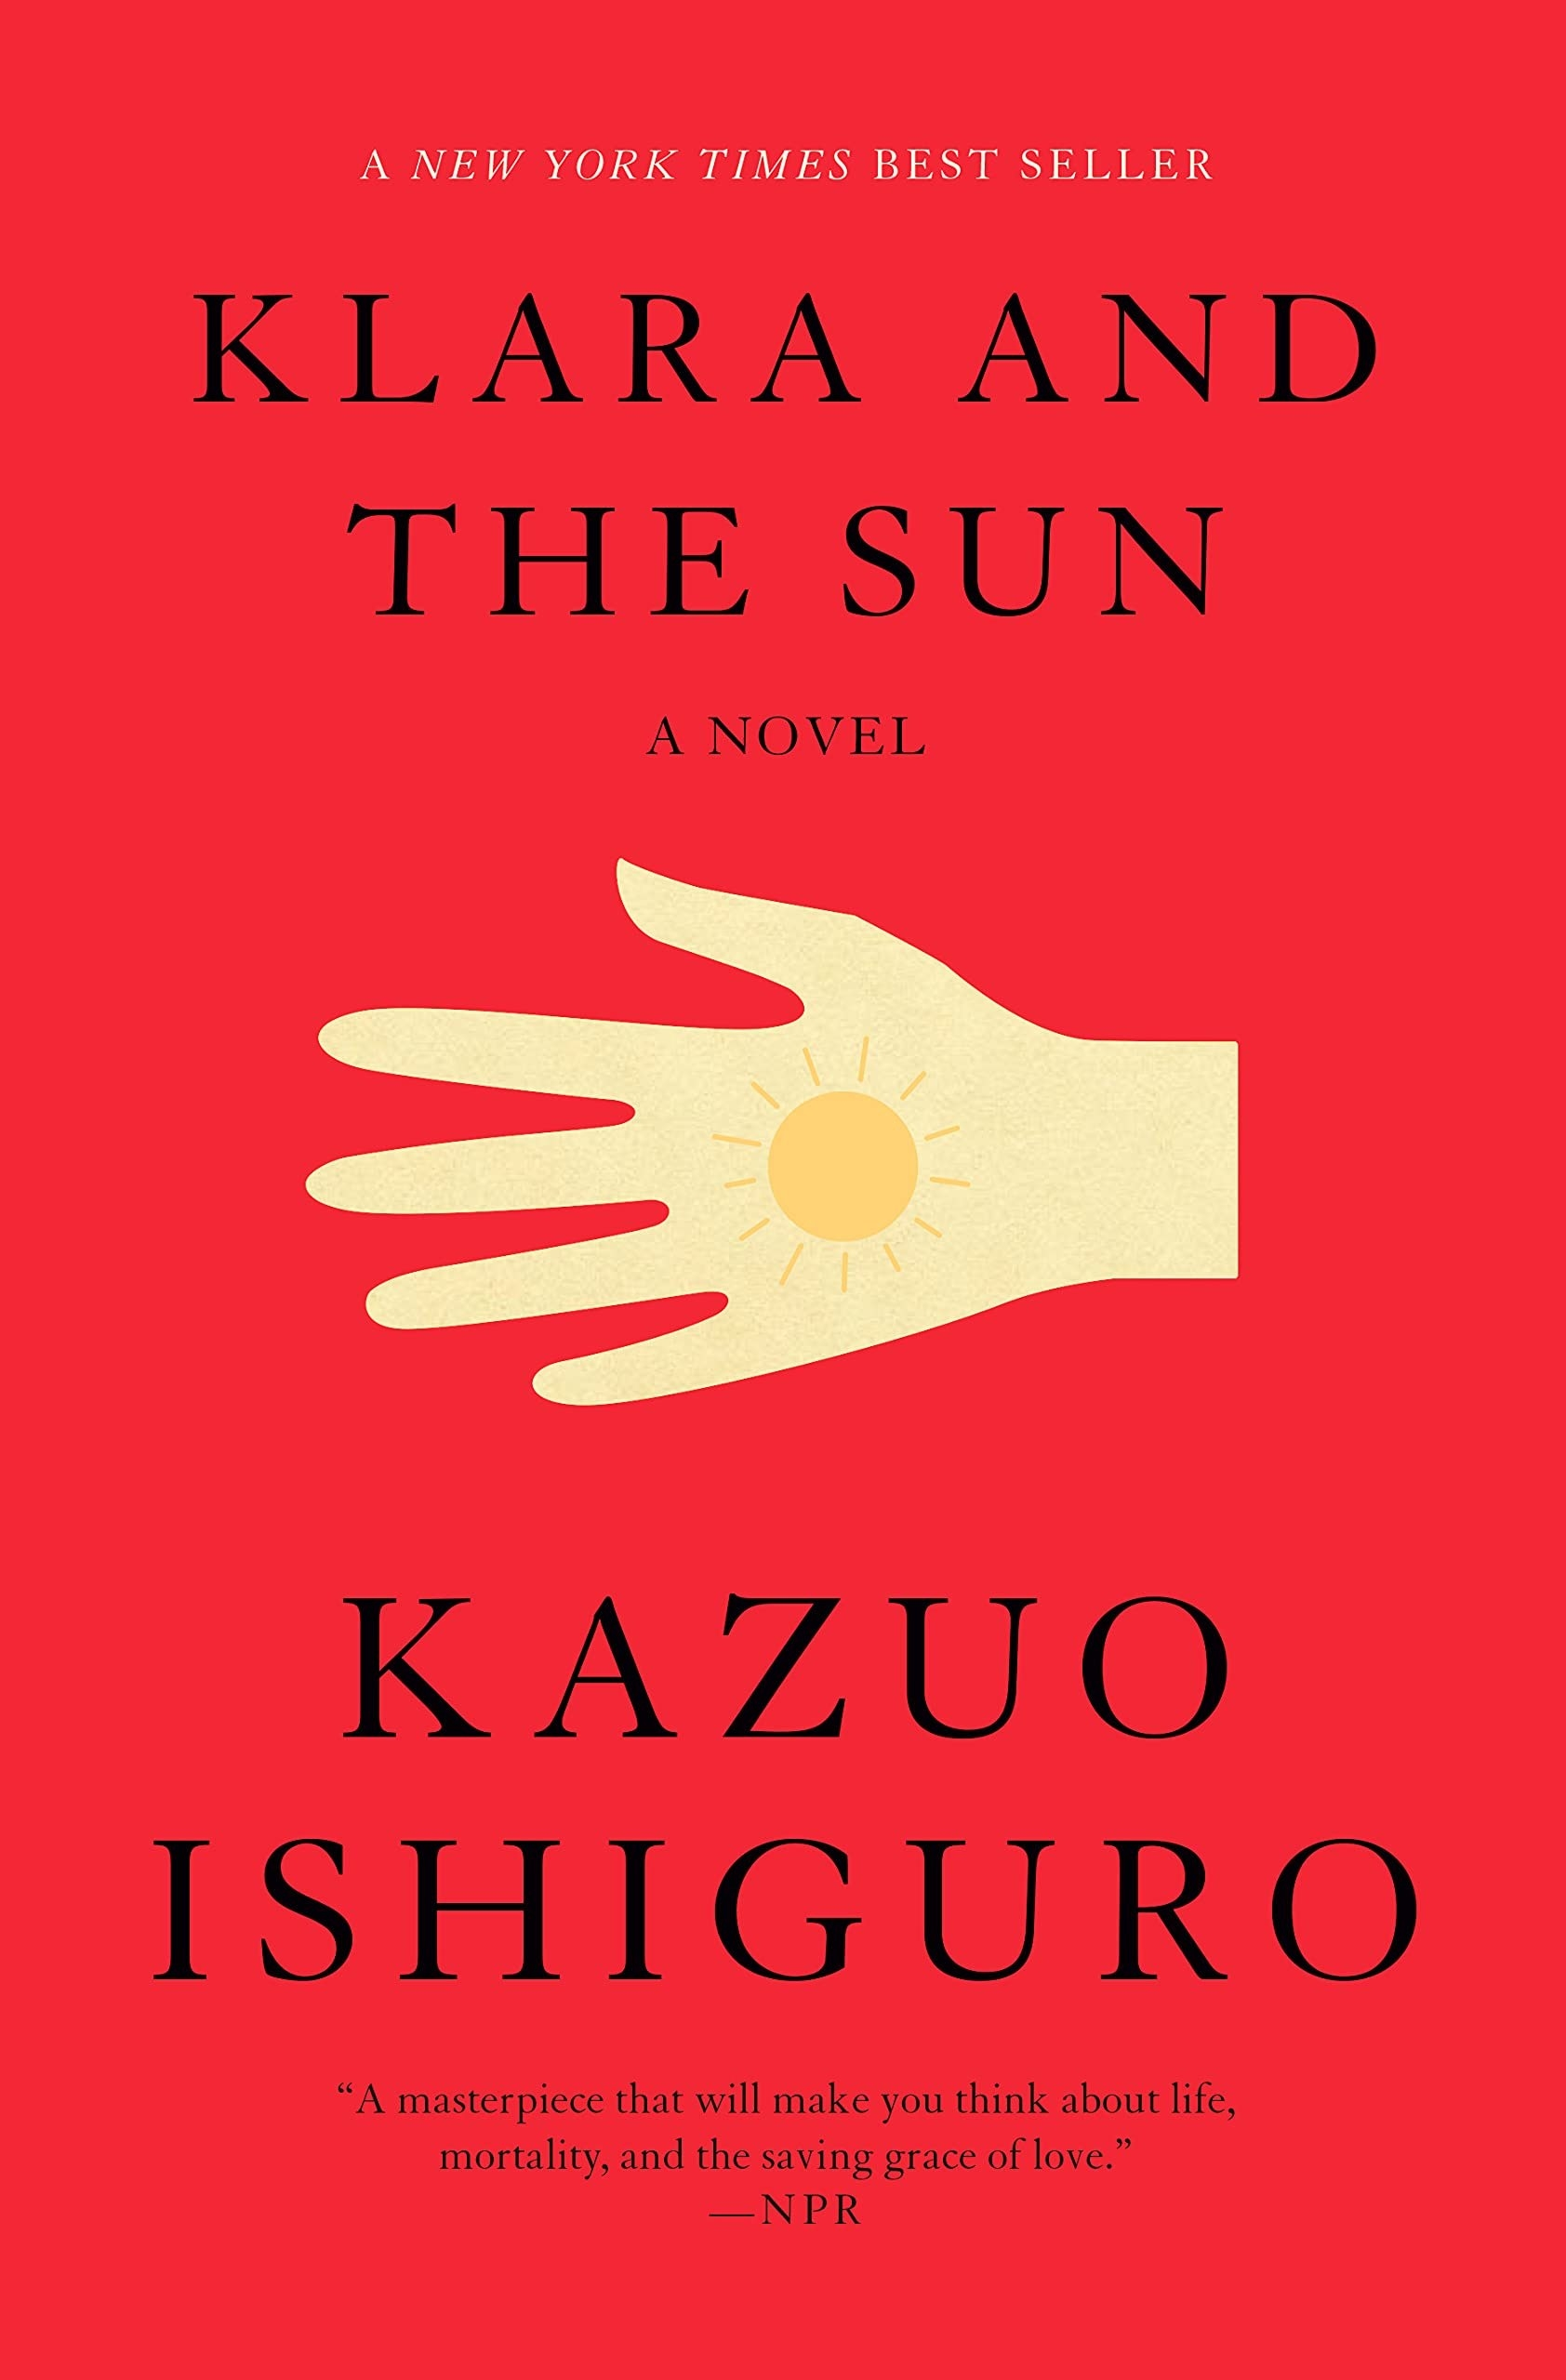 The cover of Klara And The Sun by Kazuo Ishiguro